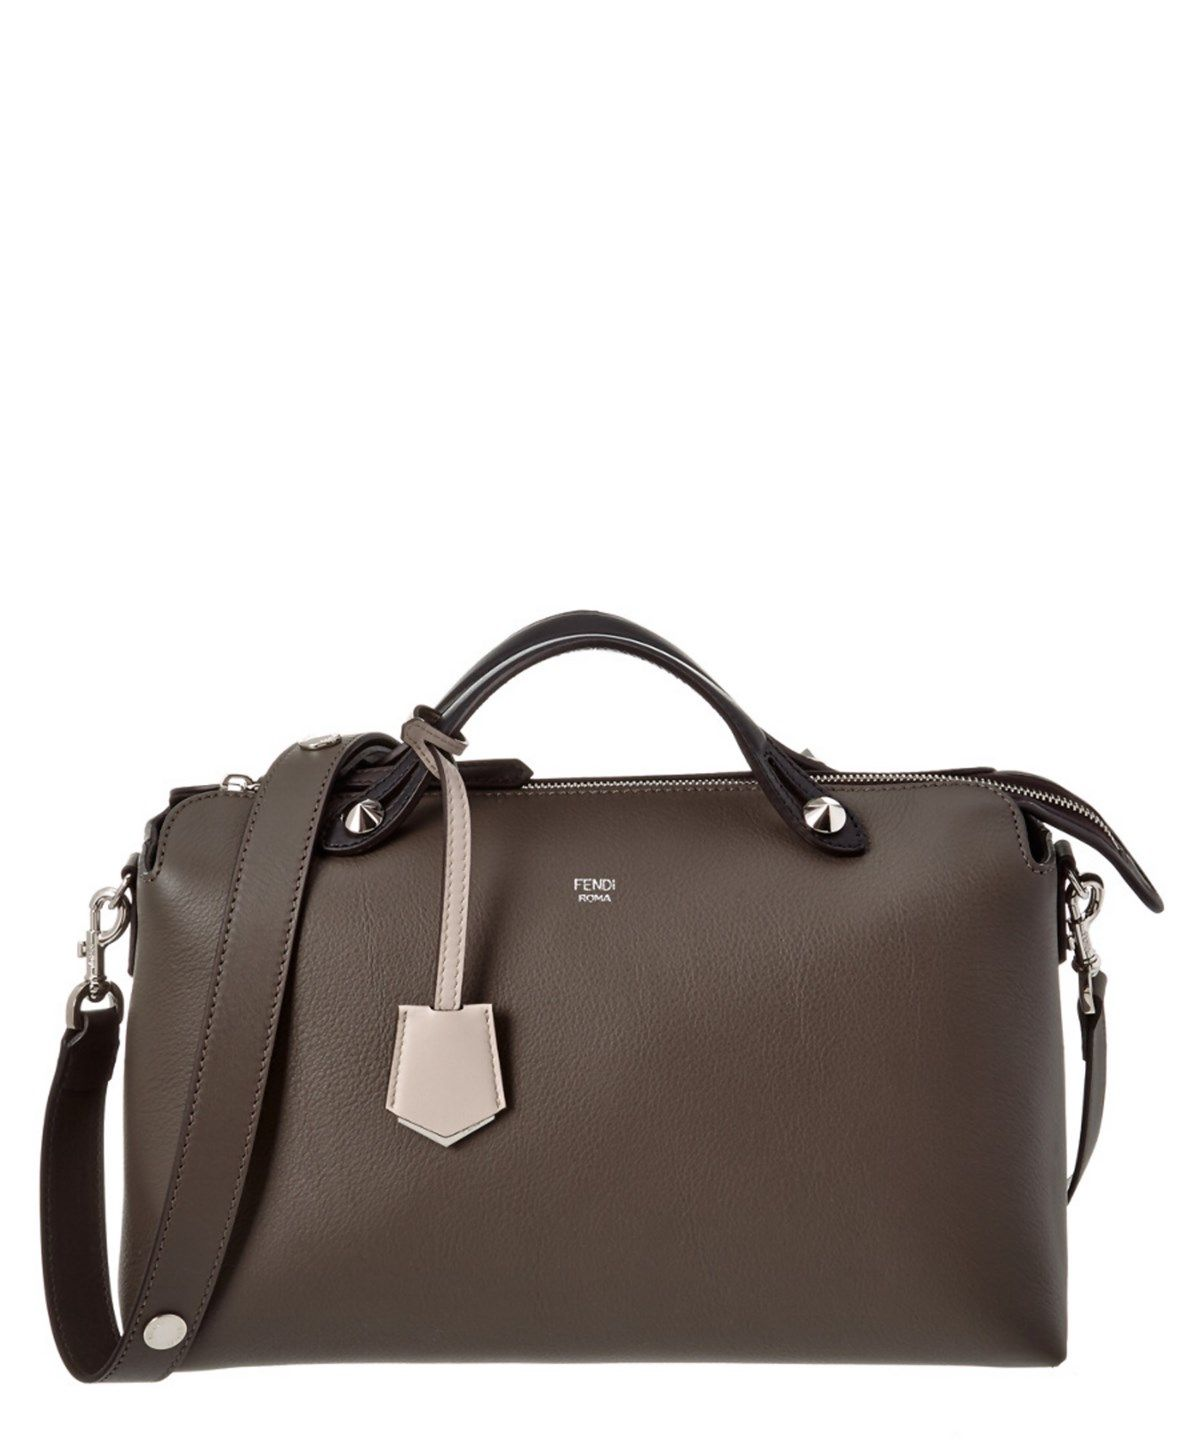 0ee563f9ee07 FENDI FENDI LARGE BY THE WAY LEATHER BOSTON BAG .  fendi  bags  shoulder  bags  hand bags  leather  lining